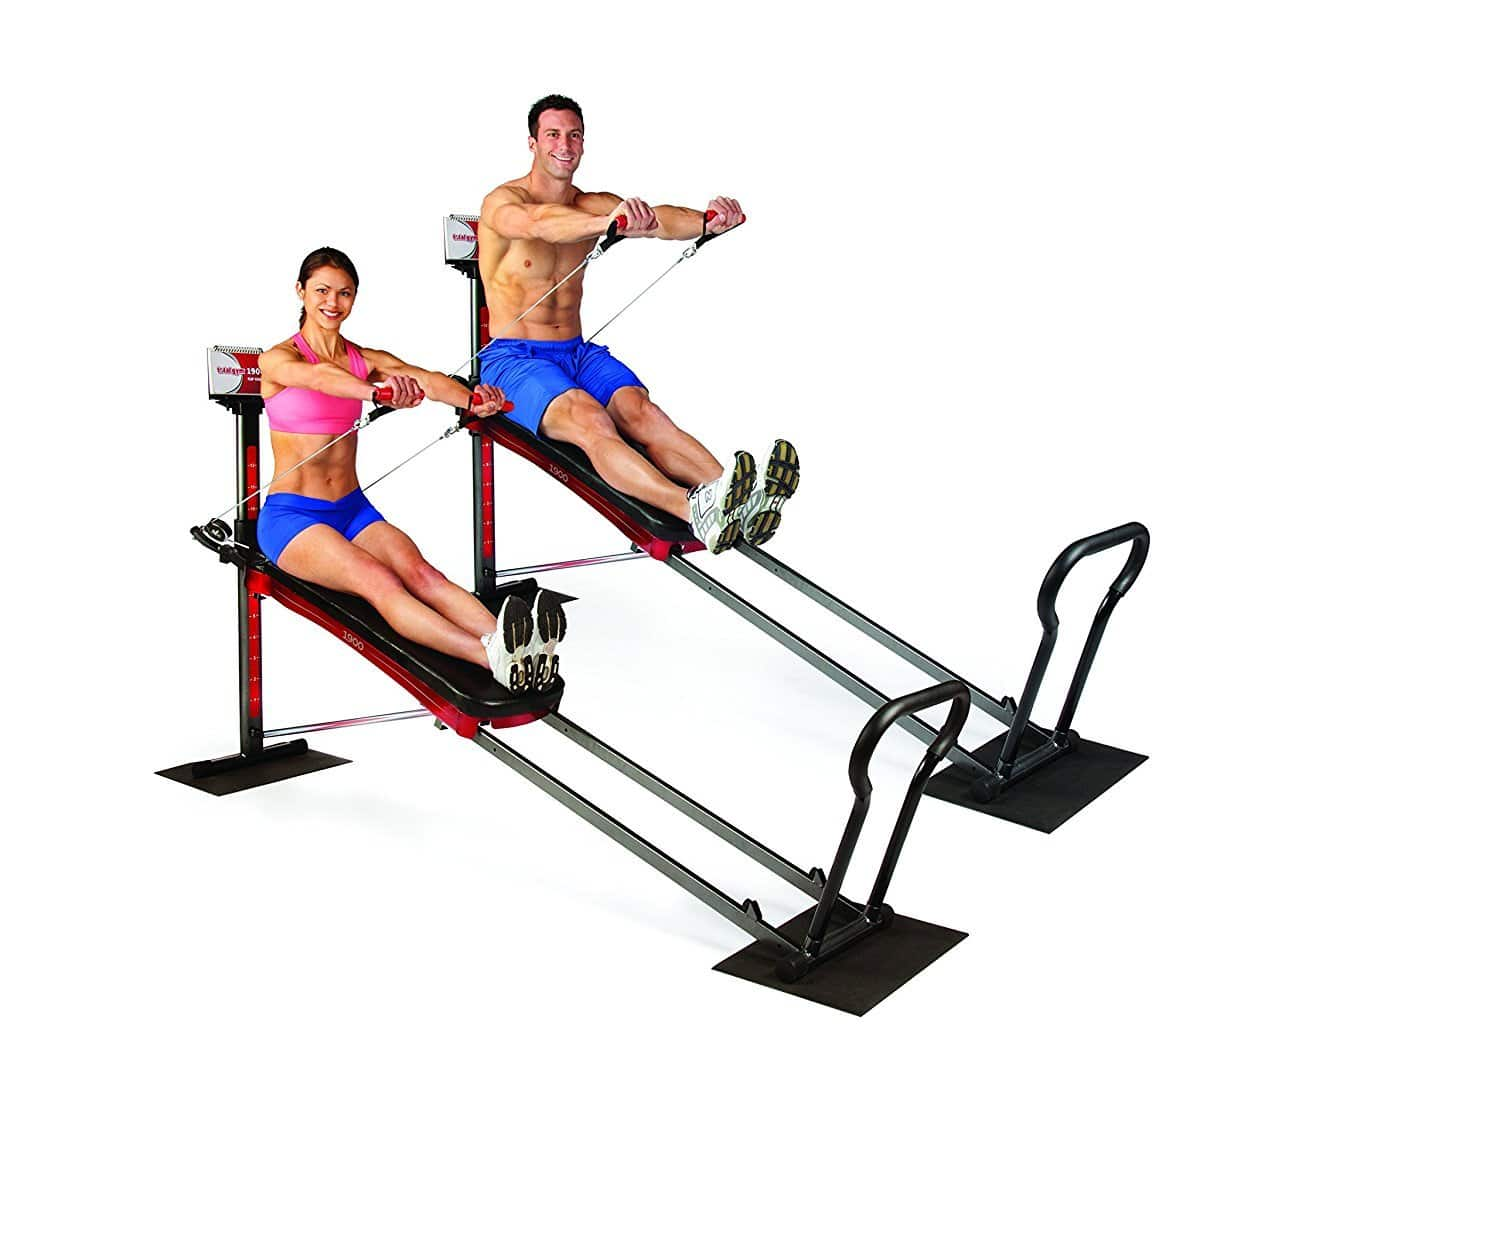 Total gym reviews- 12 best RATED machines and their accessories 6